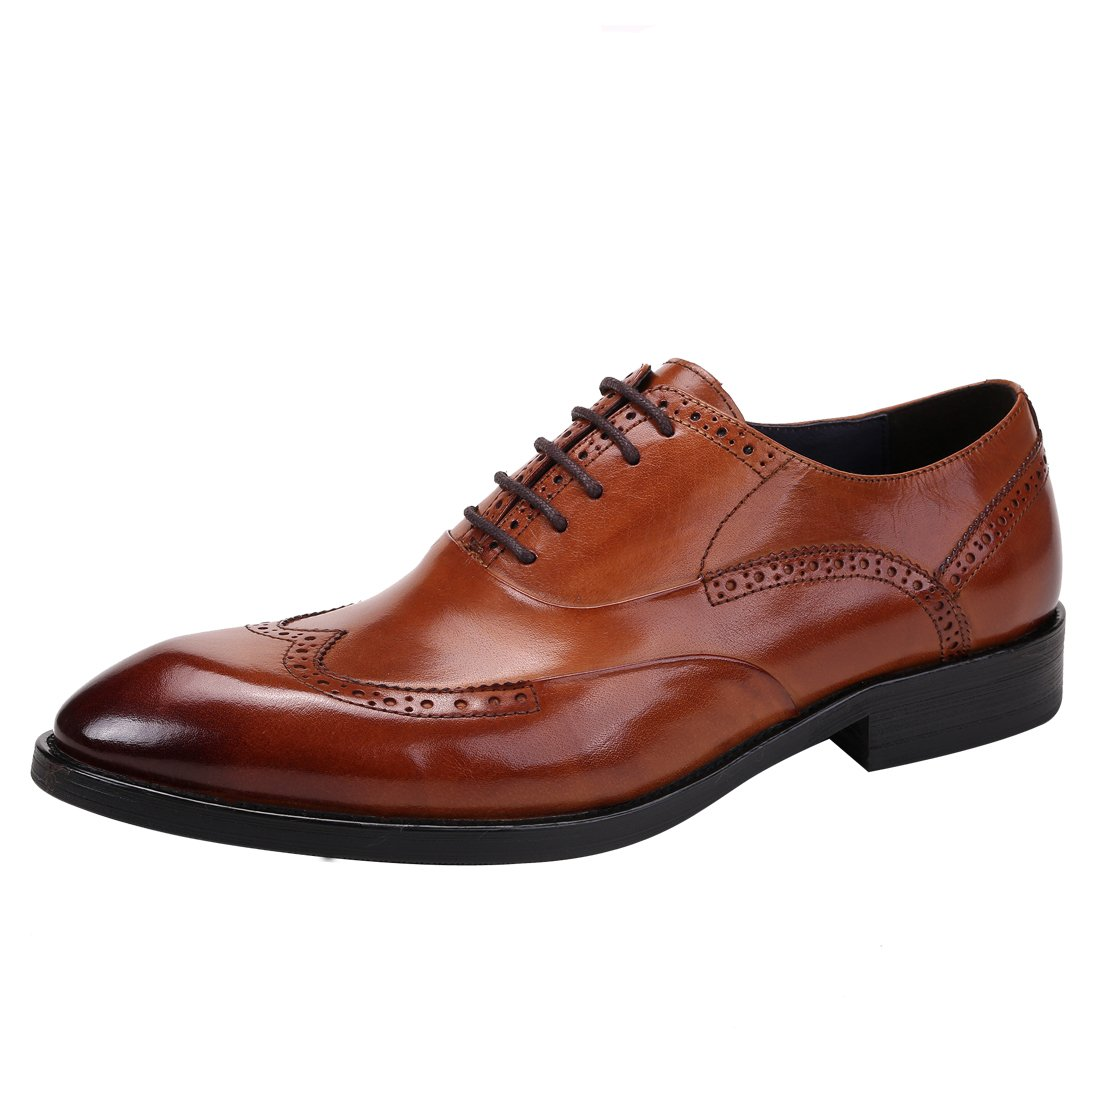 Brown Genuine Leather Brogue for Mens Business Wedding Oxford Formal Up Lace shoes Party for